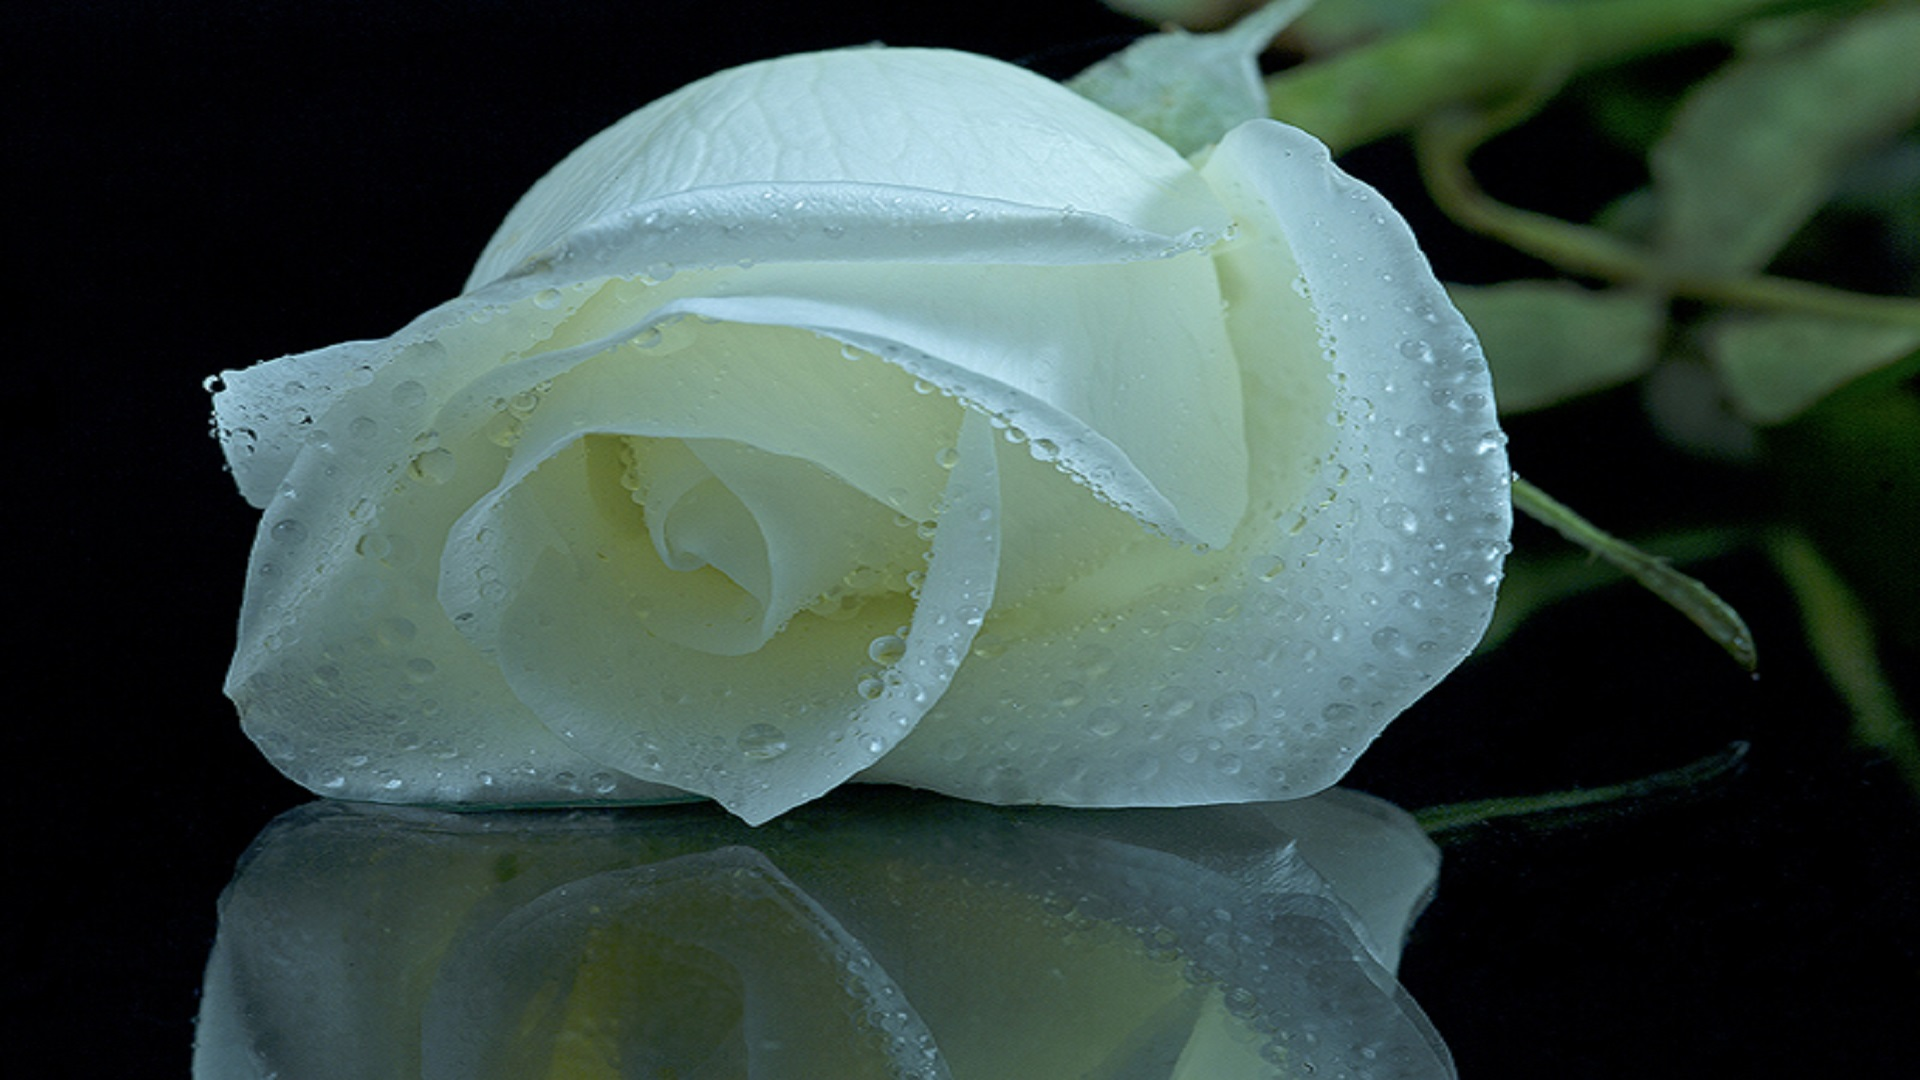 Hd for desktop nice rose mobile wallpapers 3d rose wallpaper free - So Beautiful Shiney White Roses Hd Free Wallpapers